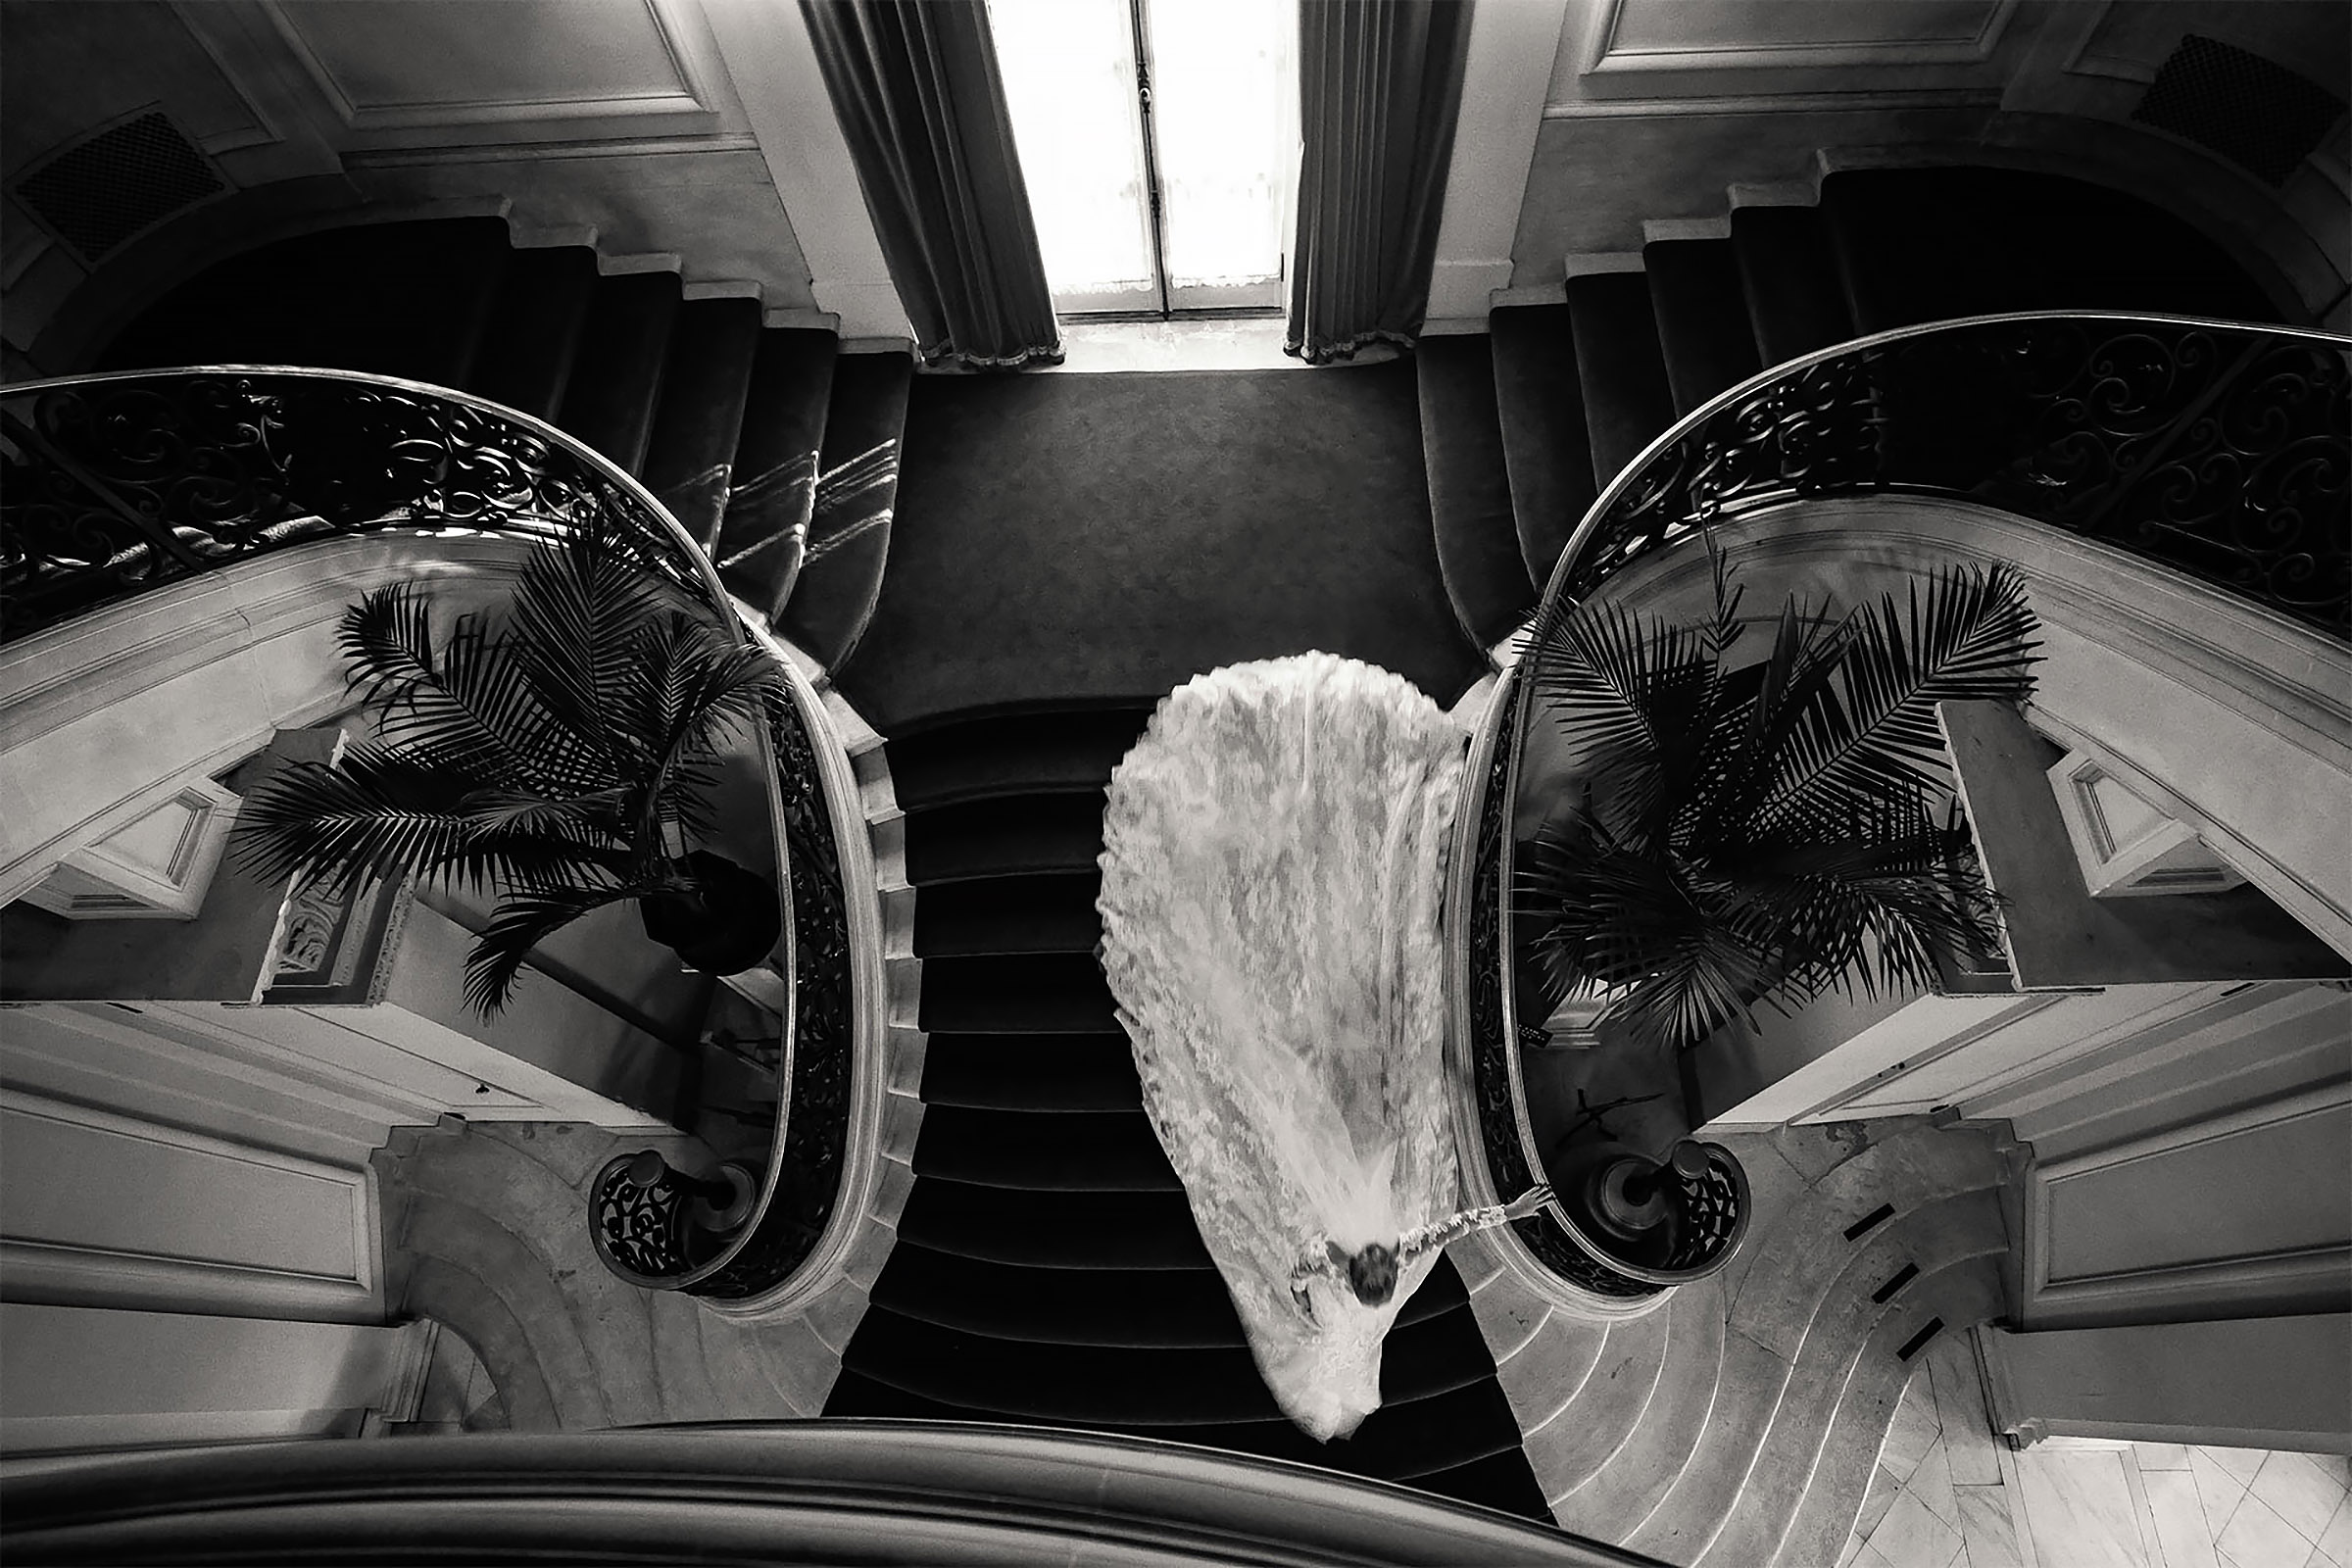 Balcony view of bride descending spiral staircase - photo by Alex Paul Photography